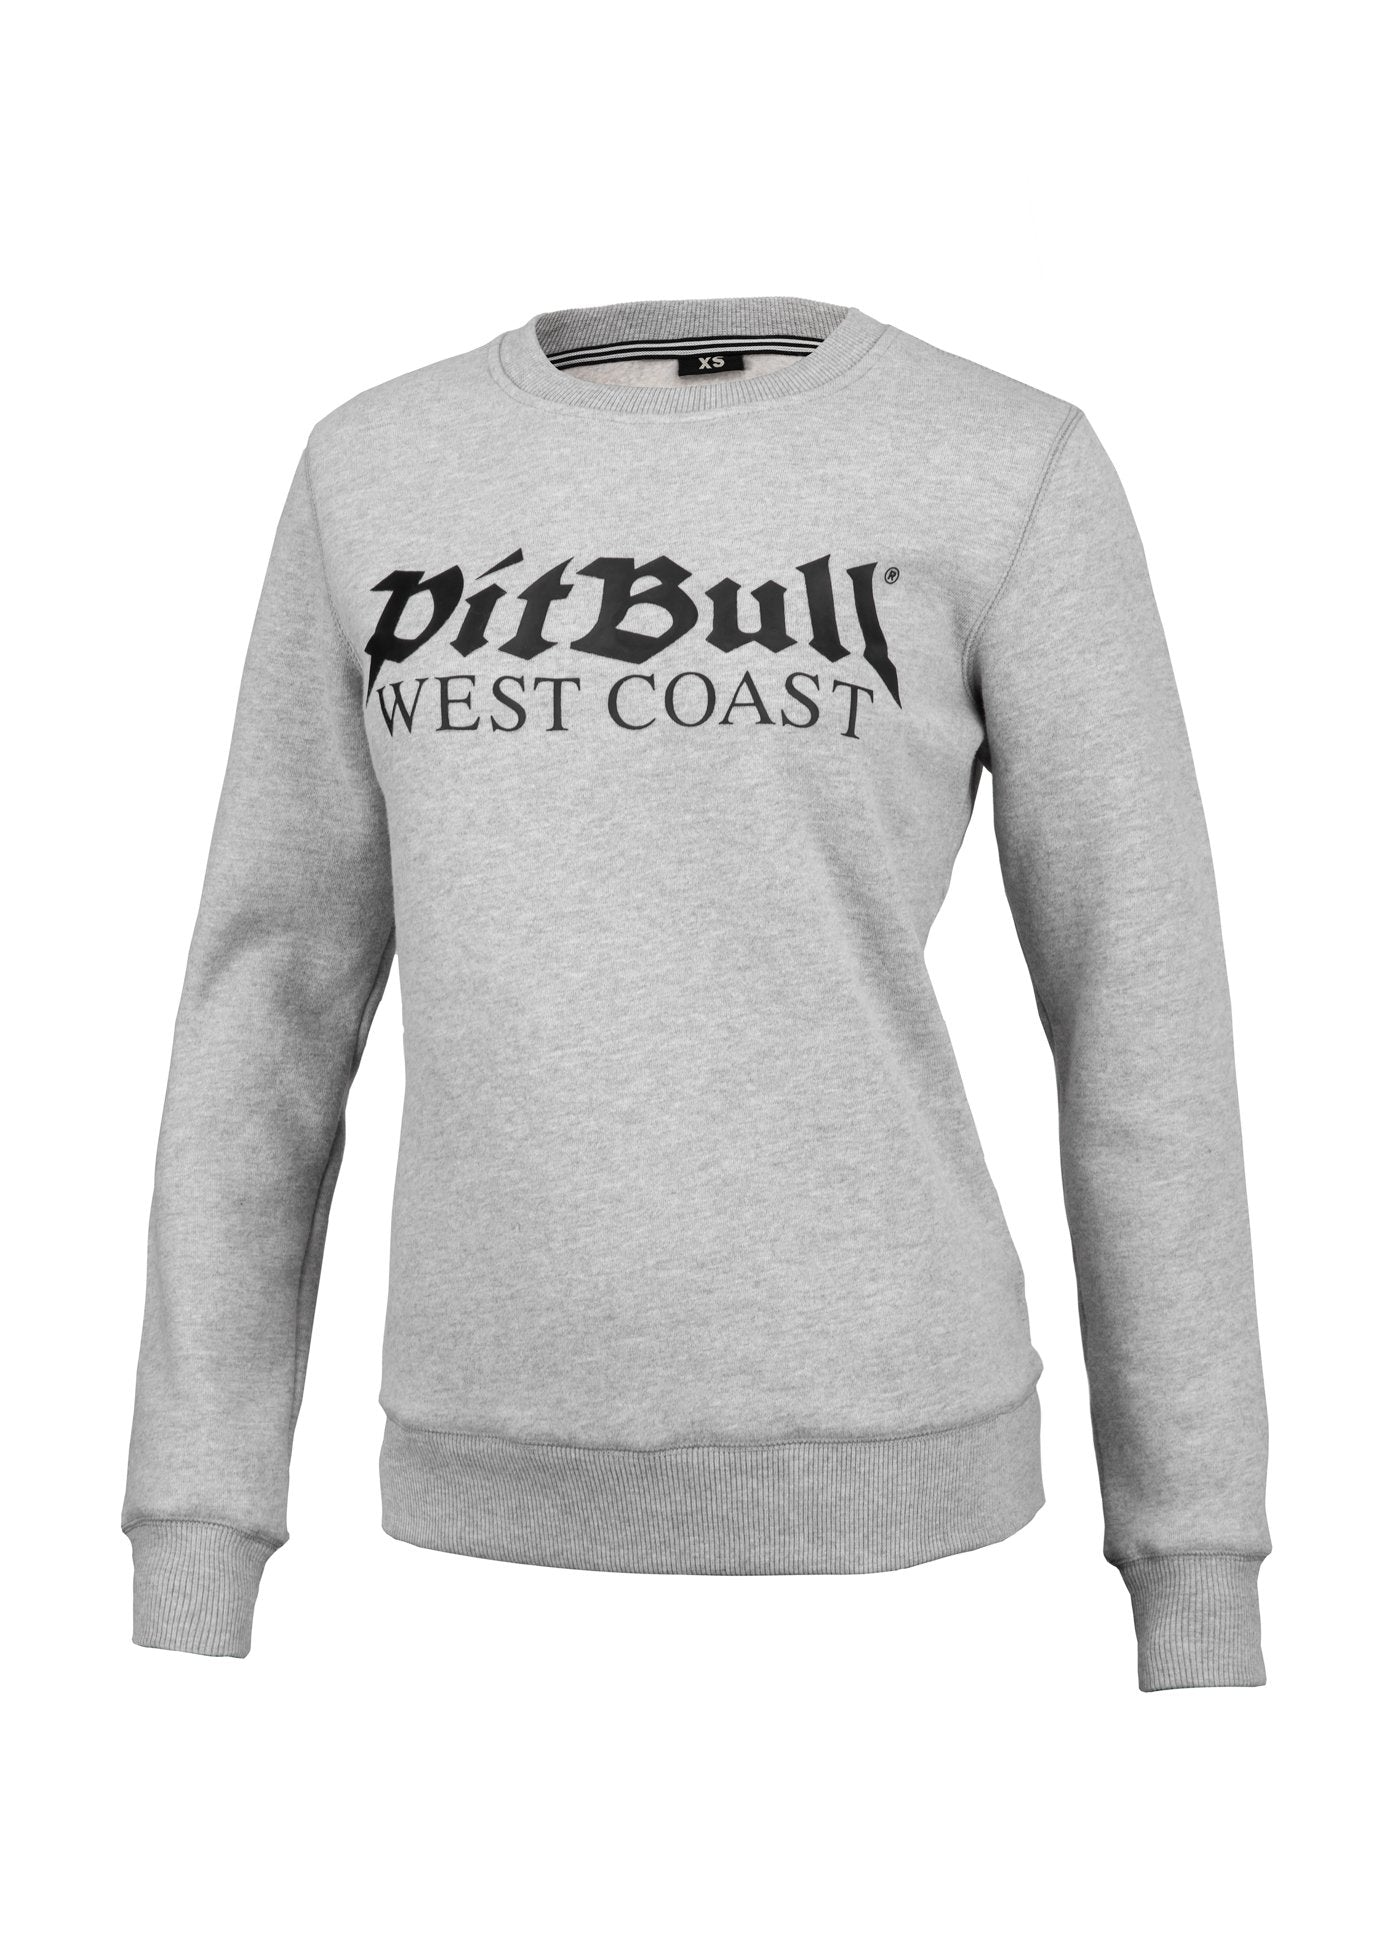 Women OLD LOGO Crewneck Grey MLG - Pitbull West Coast U.S.A.